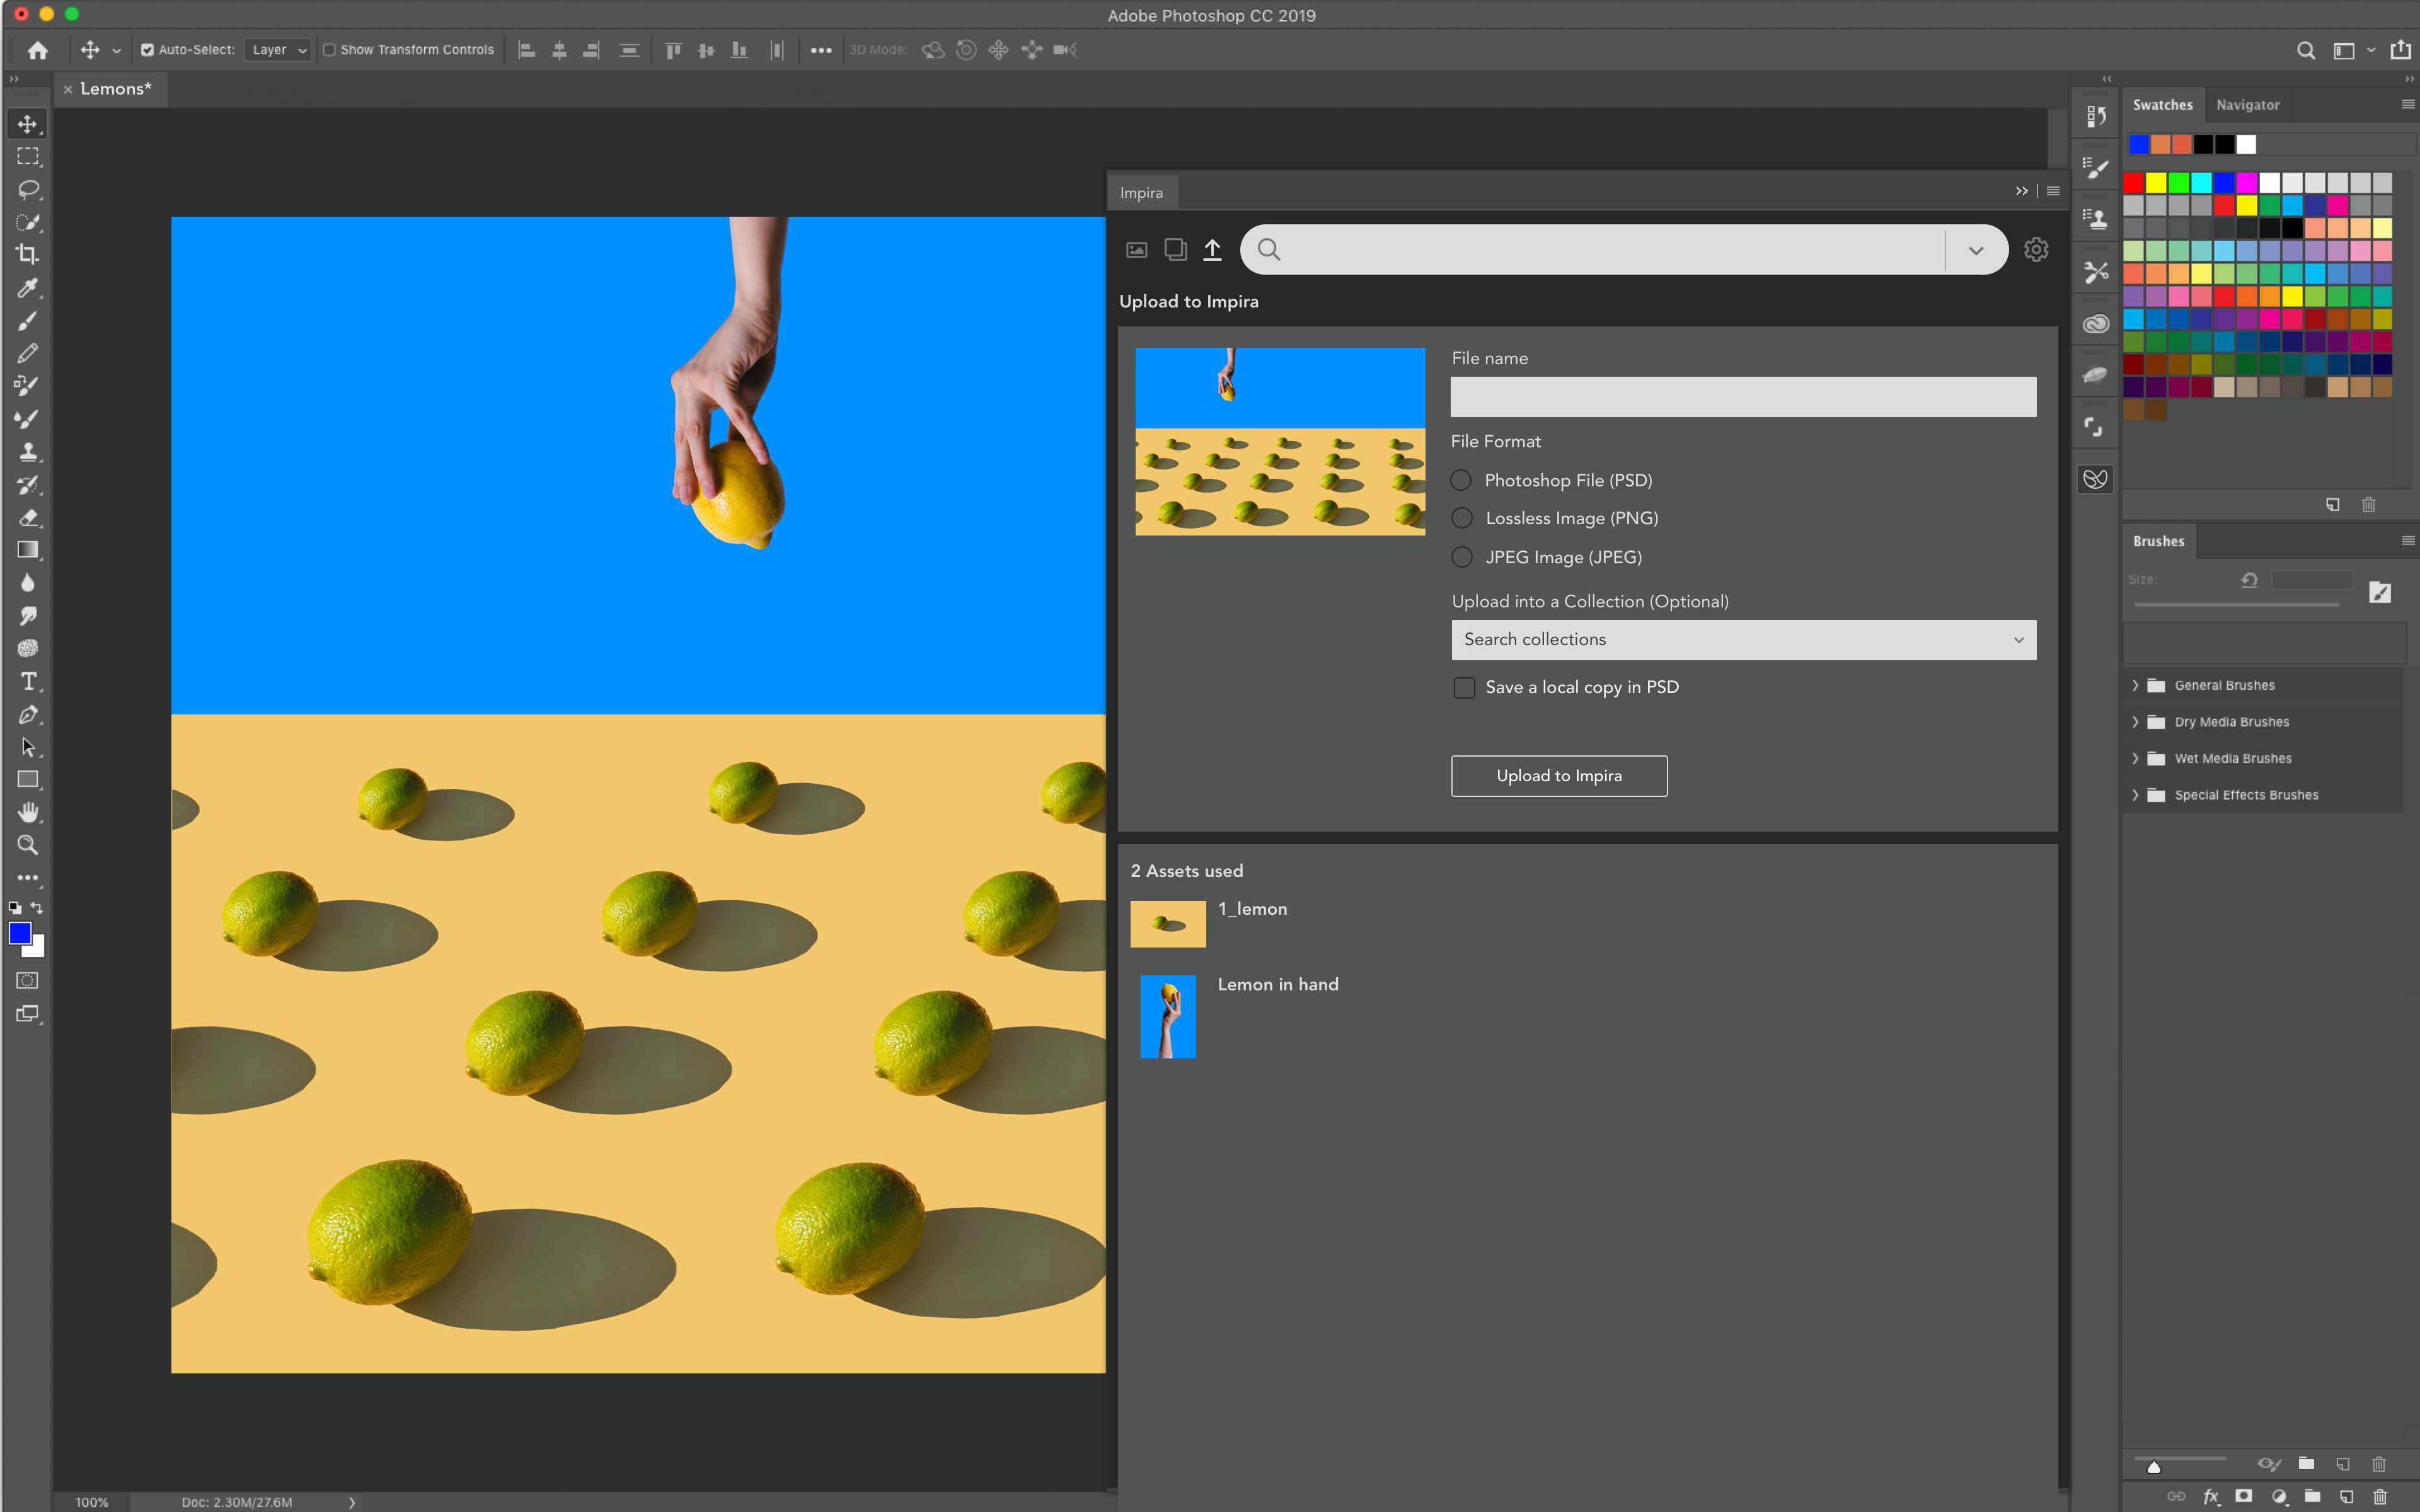 Impira's Photoshop plugin uploading a new assets linked to the original visual assets used.